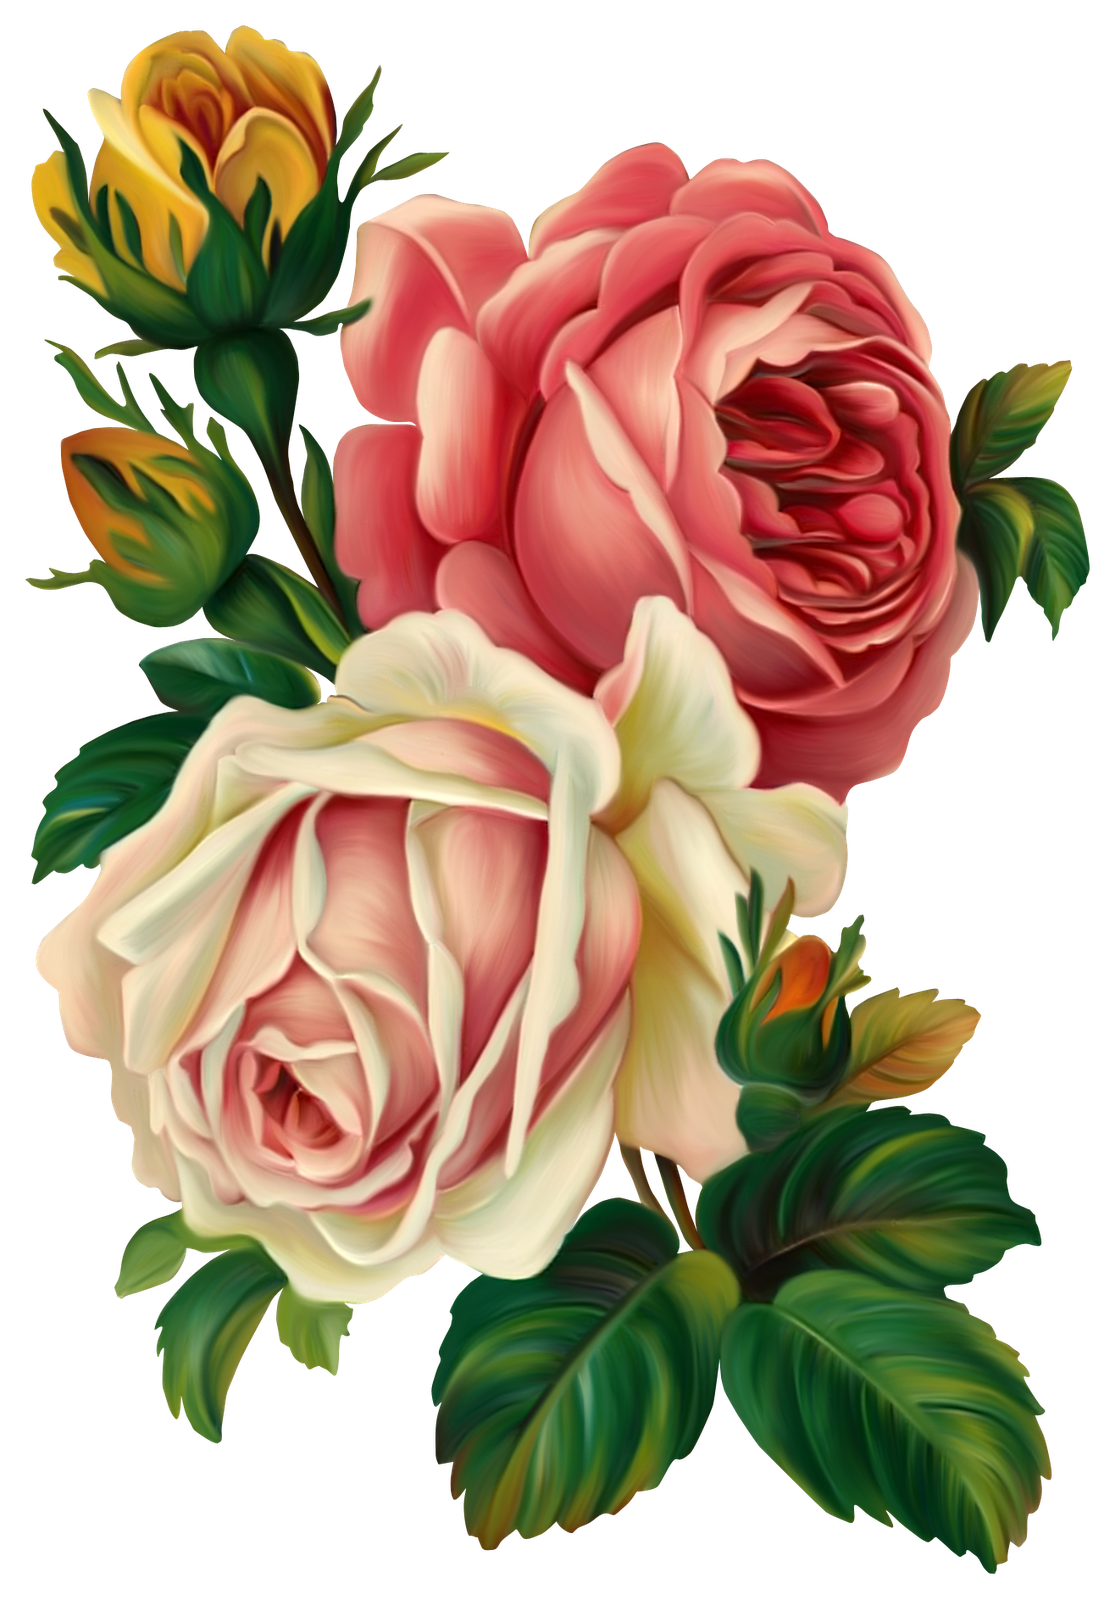 Vc throughmyeyes el png. Clipart roses rose gold